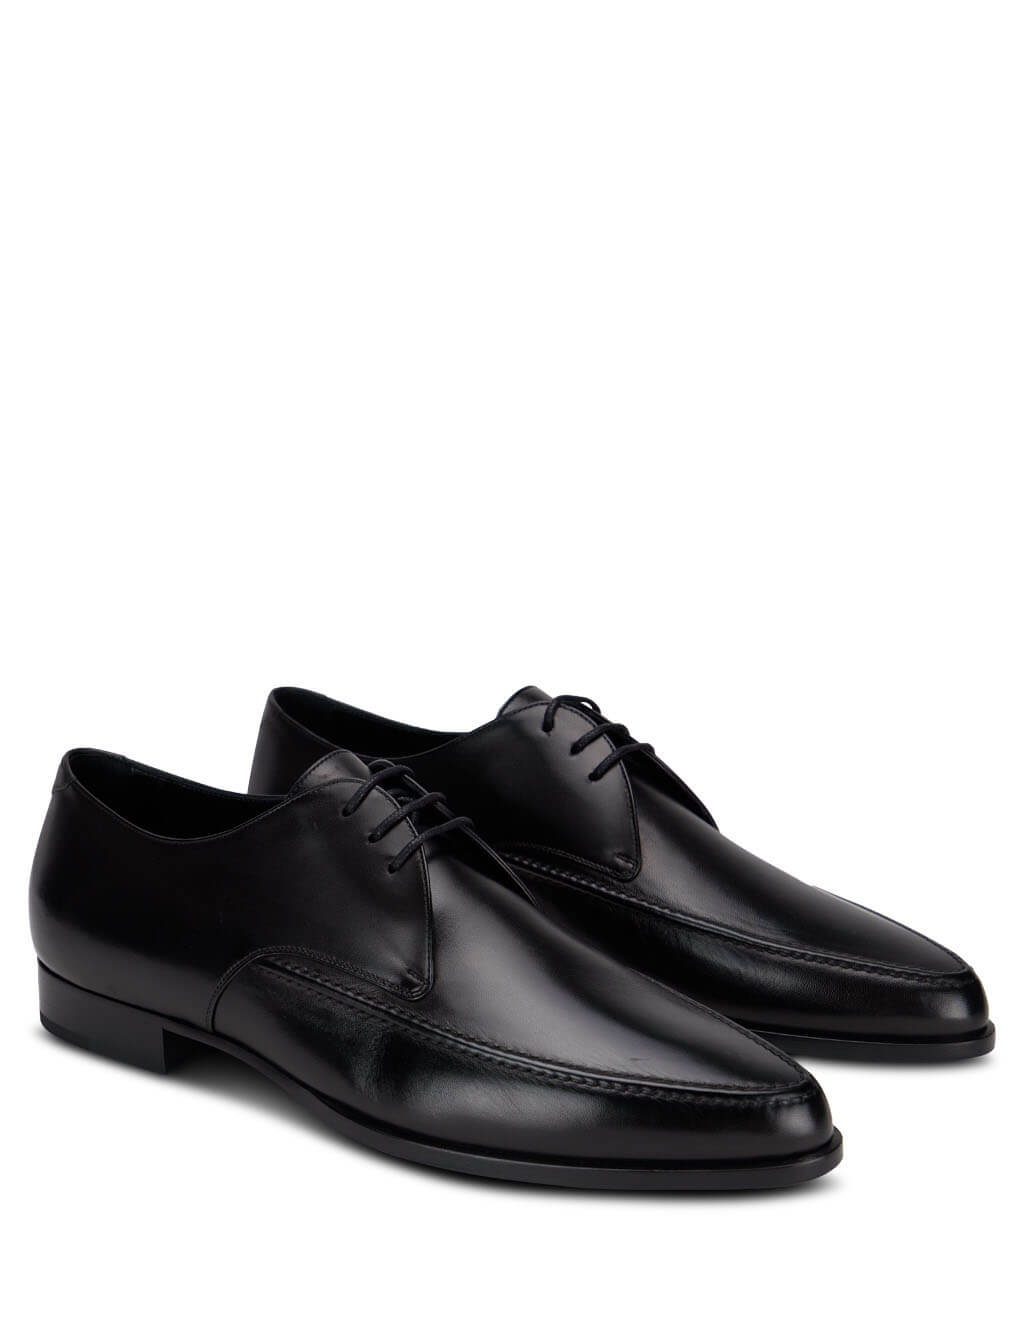 Men's Saint Laurent Marceau Derby Shoes in Black Leather. 630668AKP001000